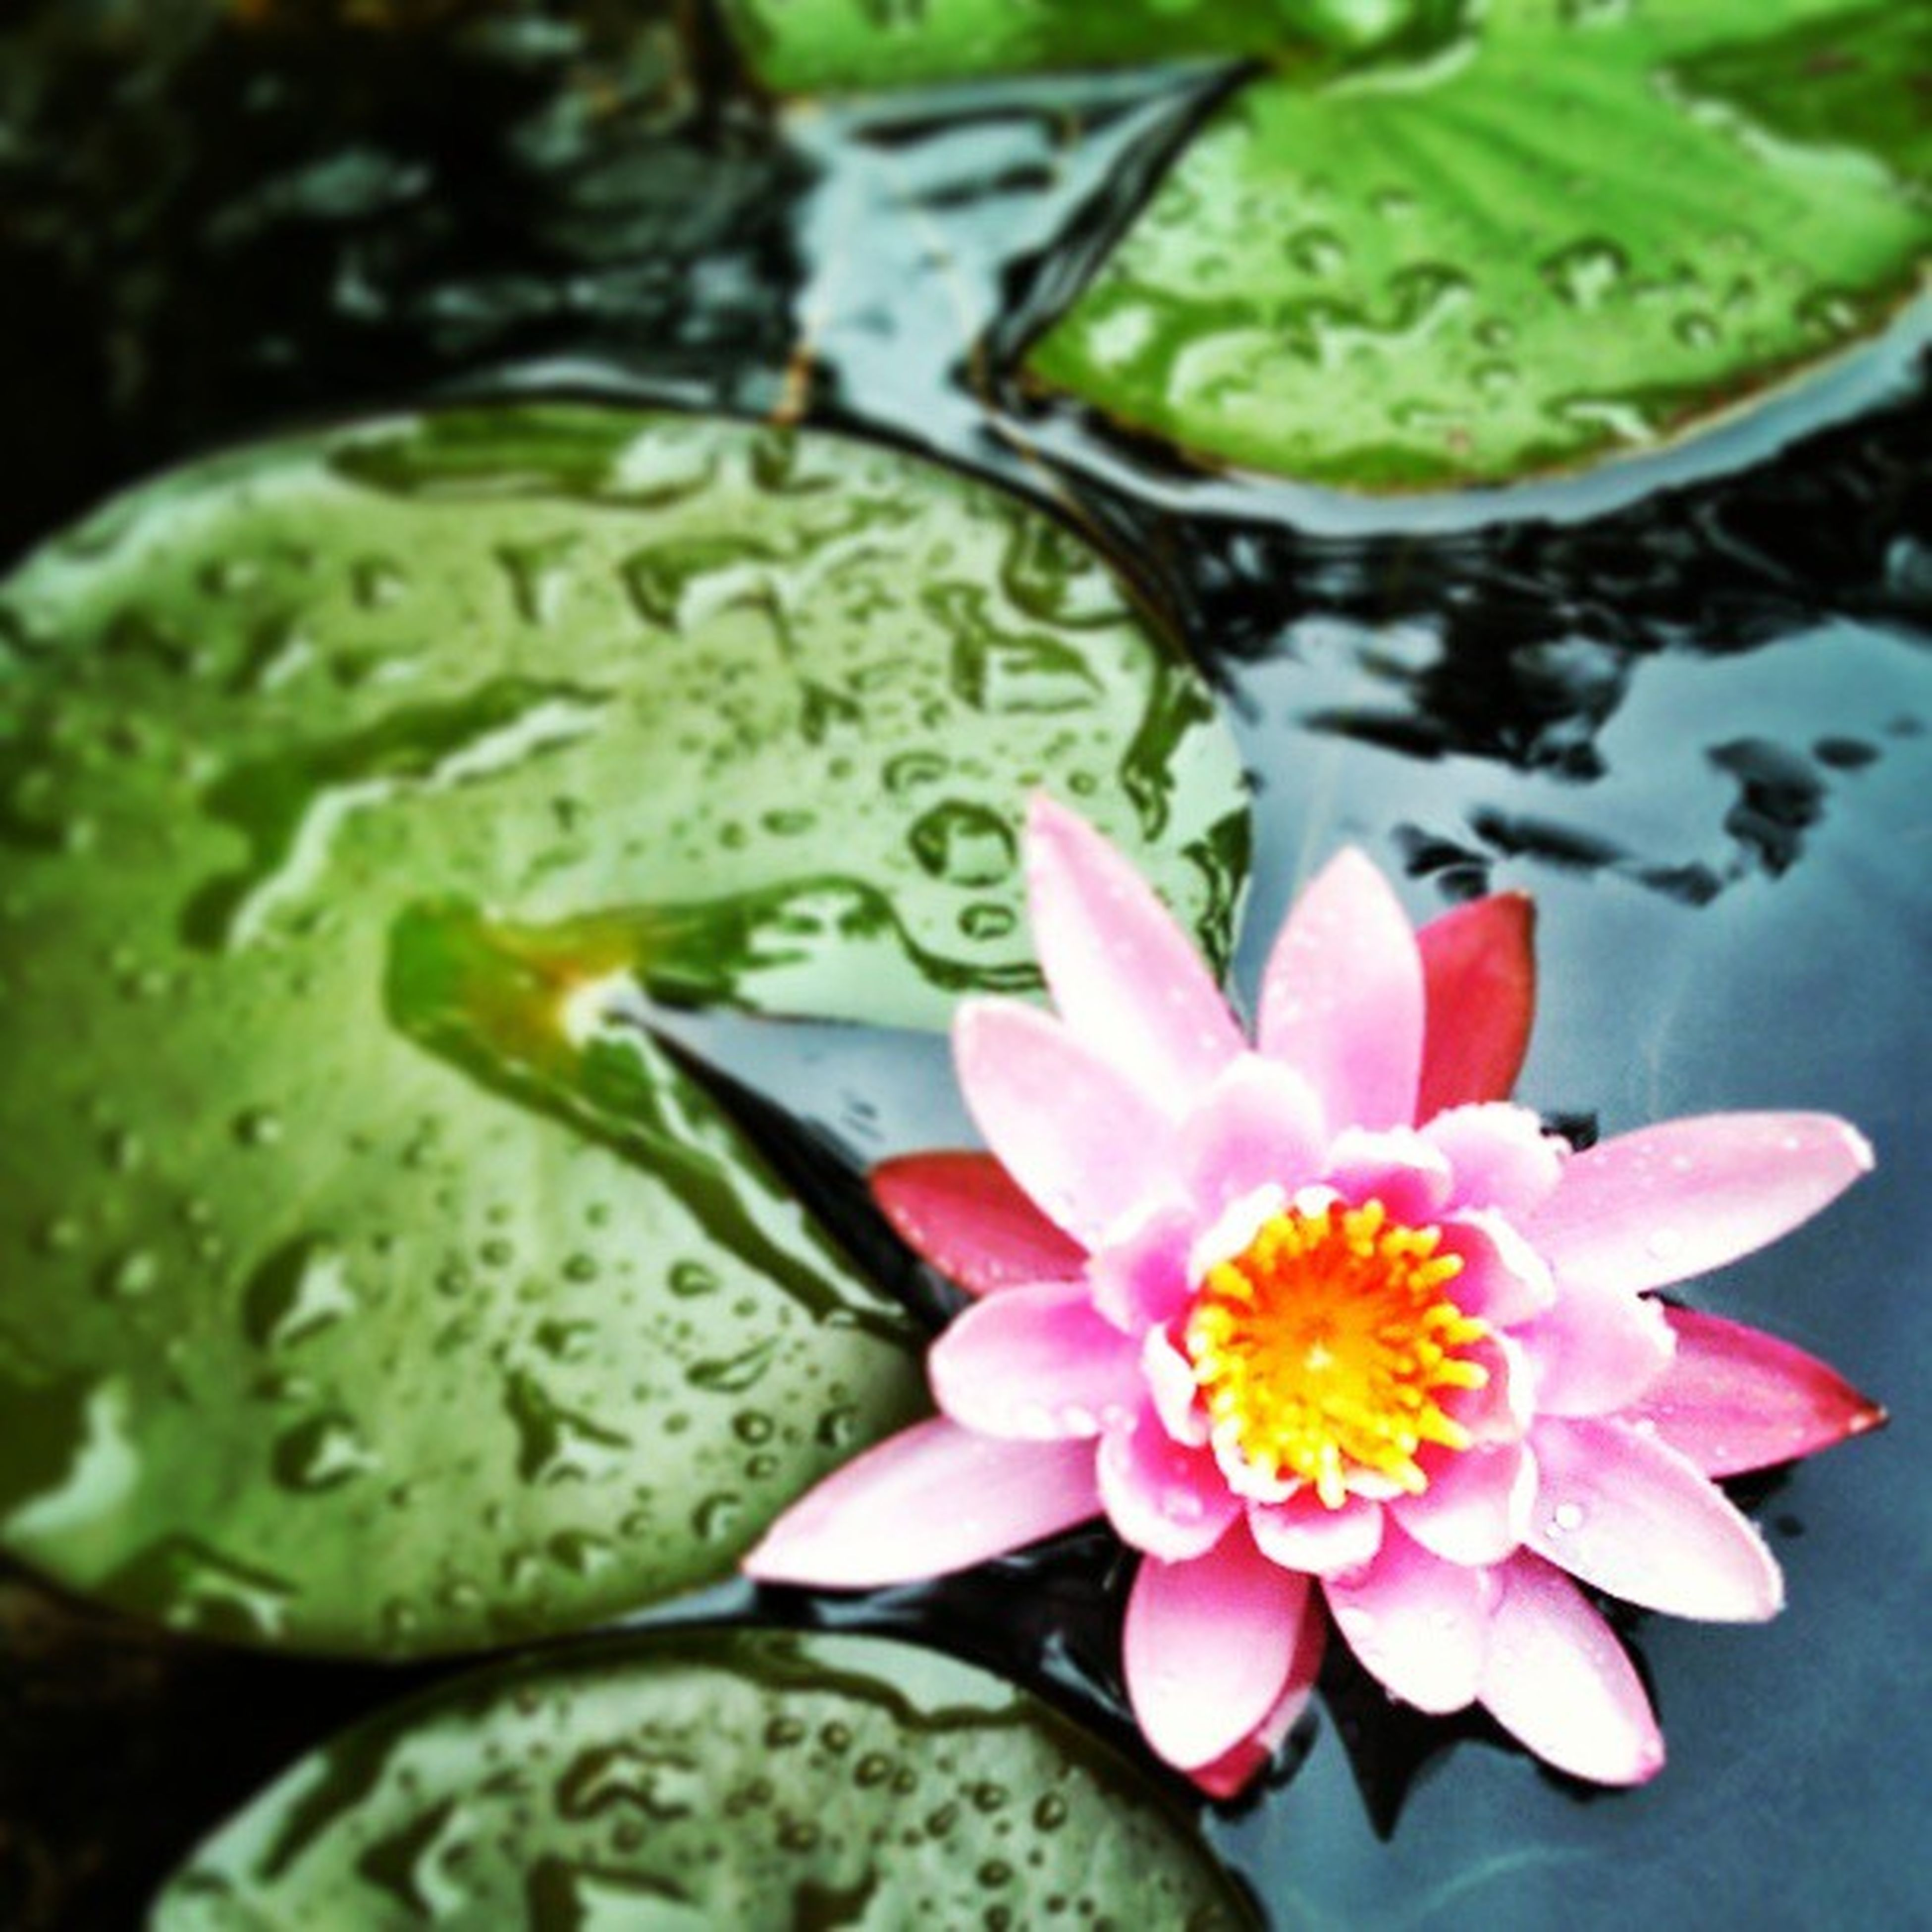 flower, water lily, petal, freshness, pond, water, flower head, fragility, floating on water, leaf, beauty in nature, lotus water lily, high angle view, growth, pink color, nature, single flower, plant, close-up, green color